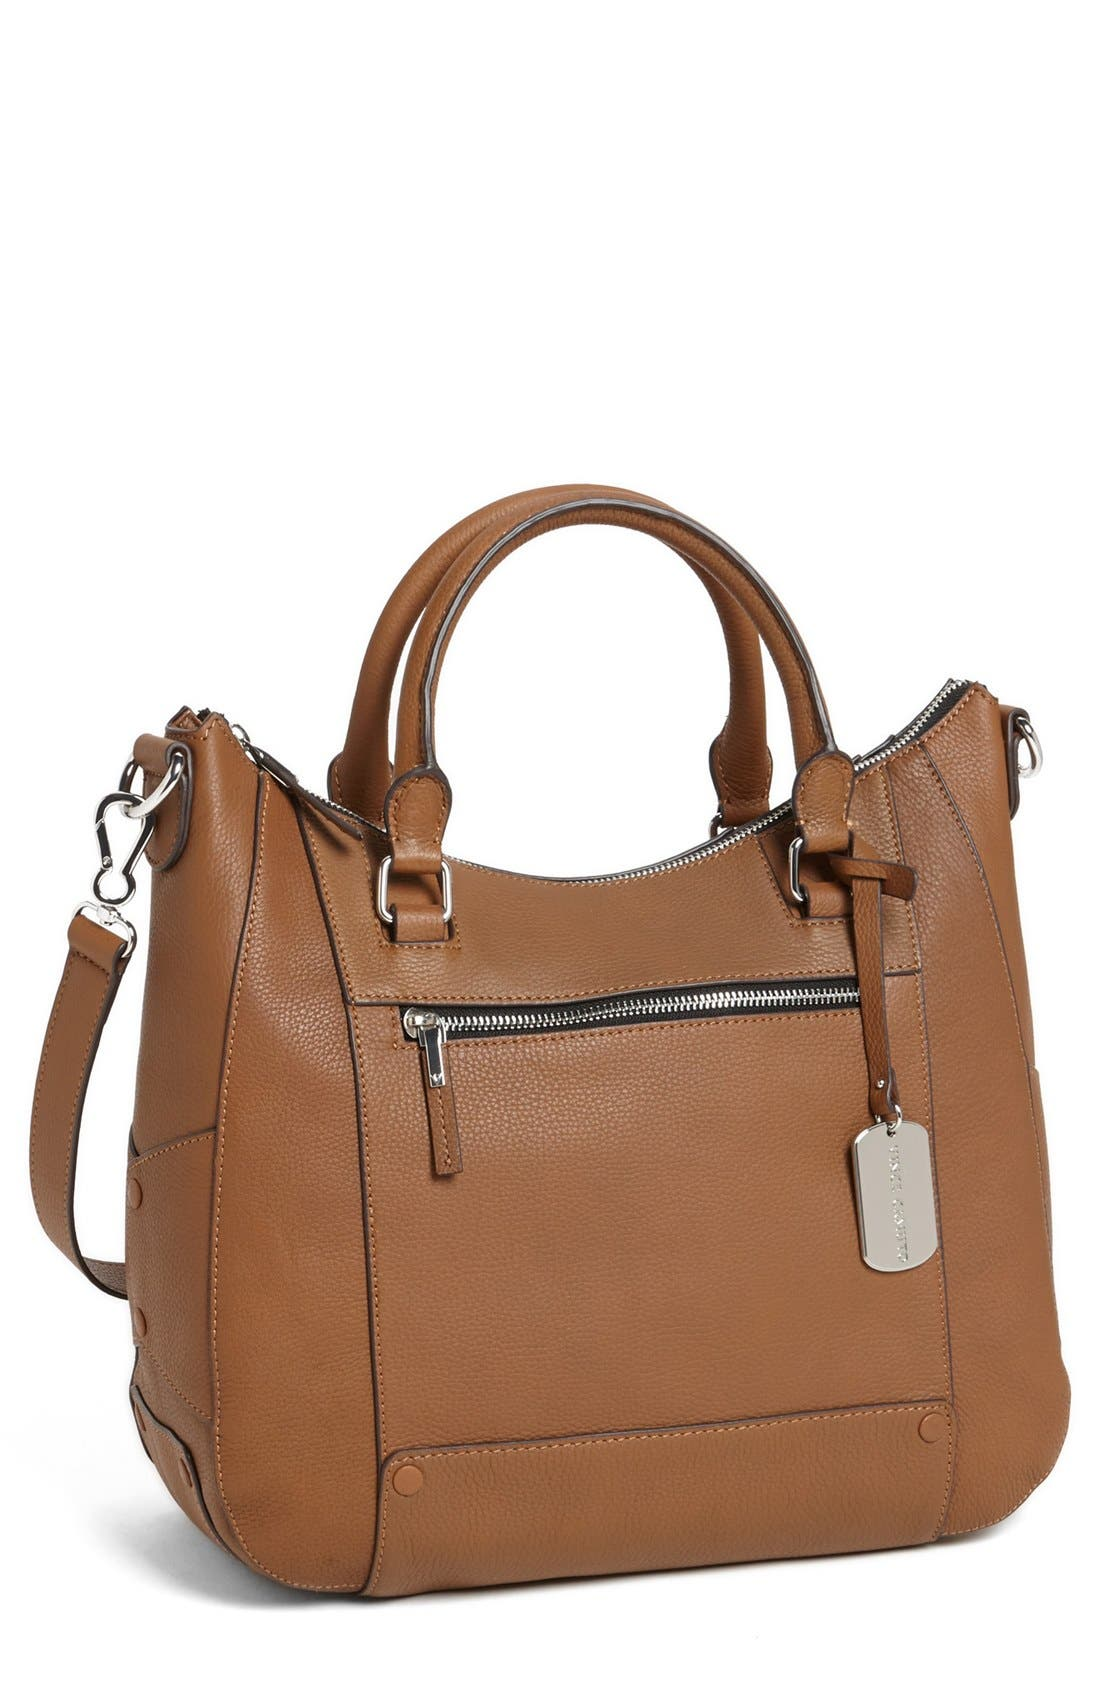 Main Image - Vince Camuto 'Mikey' Satchel